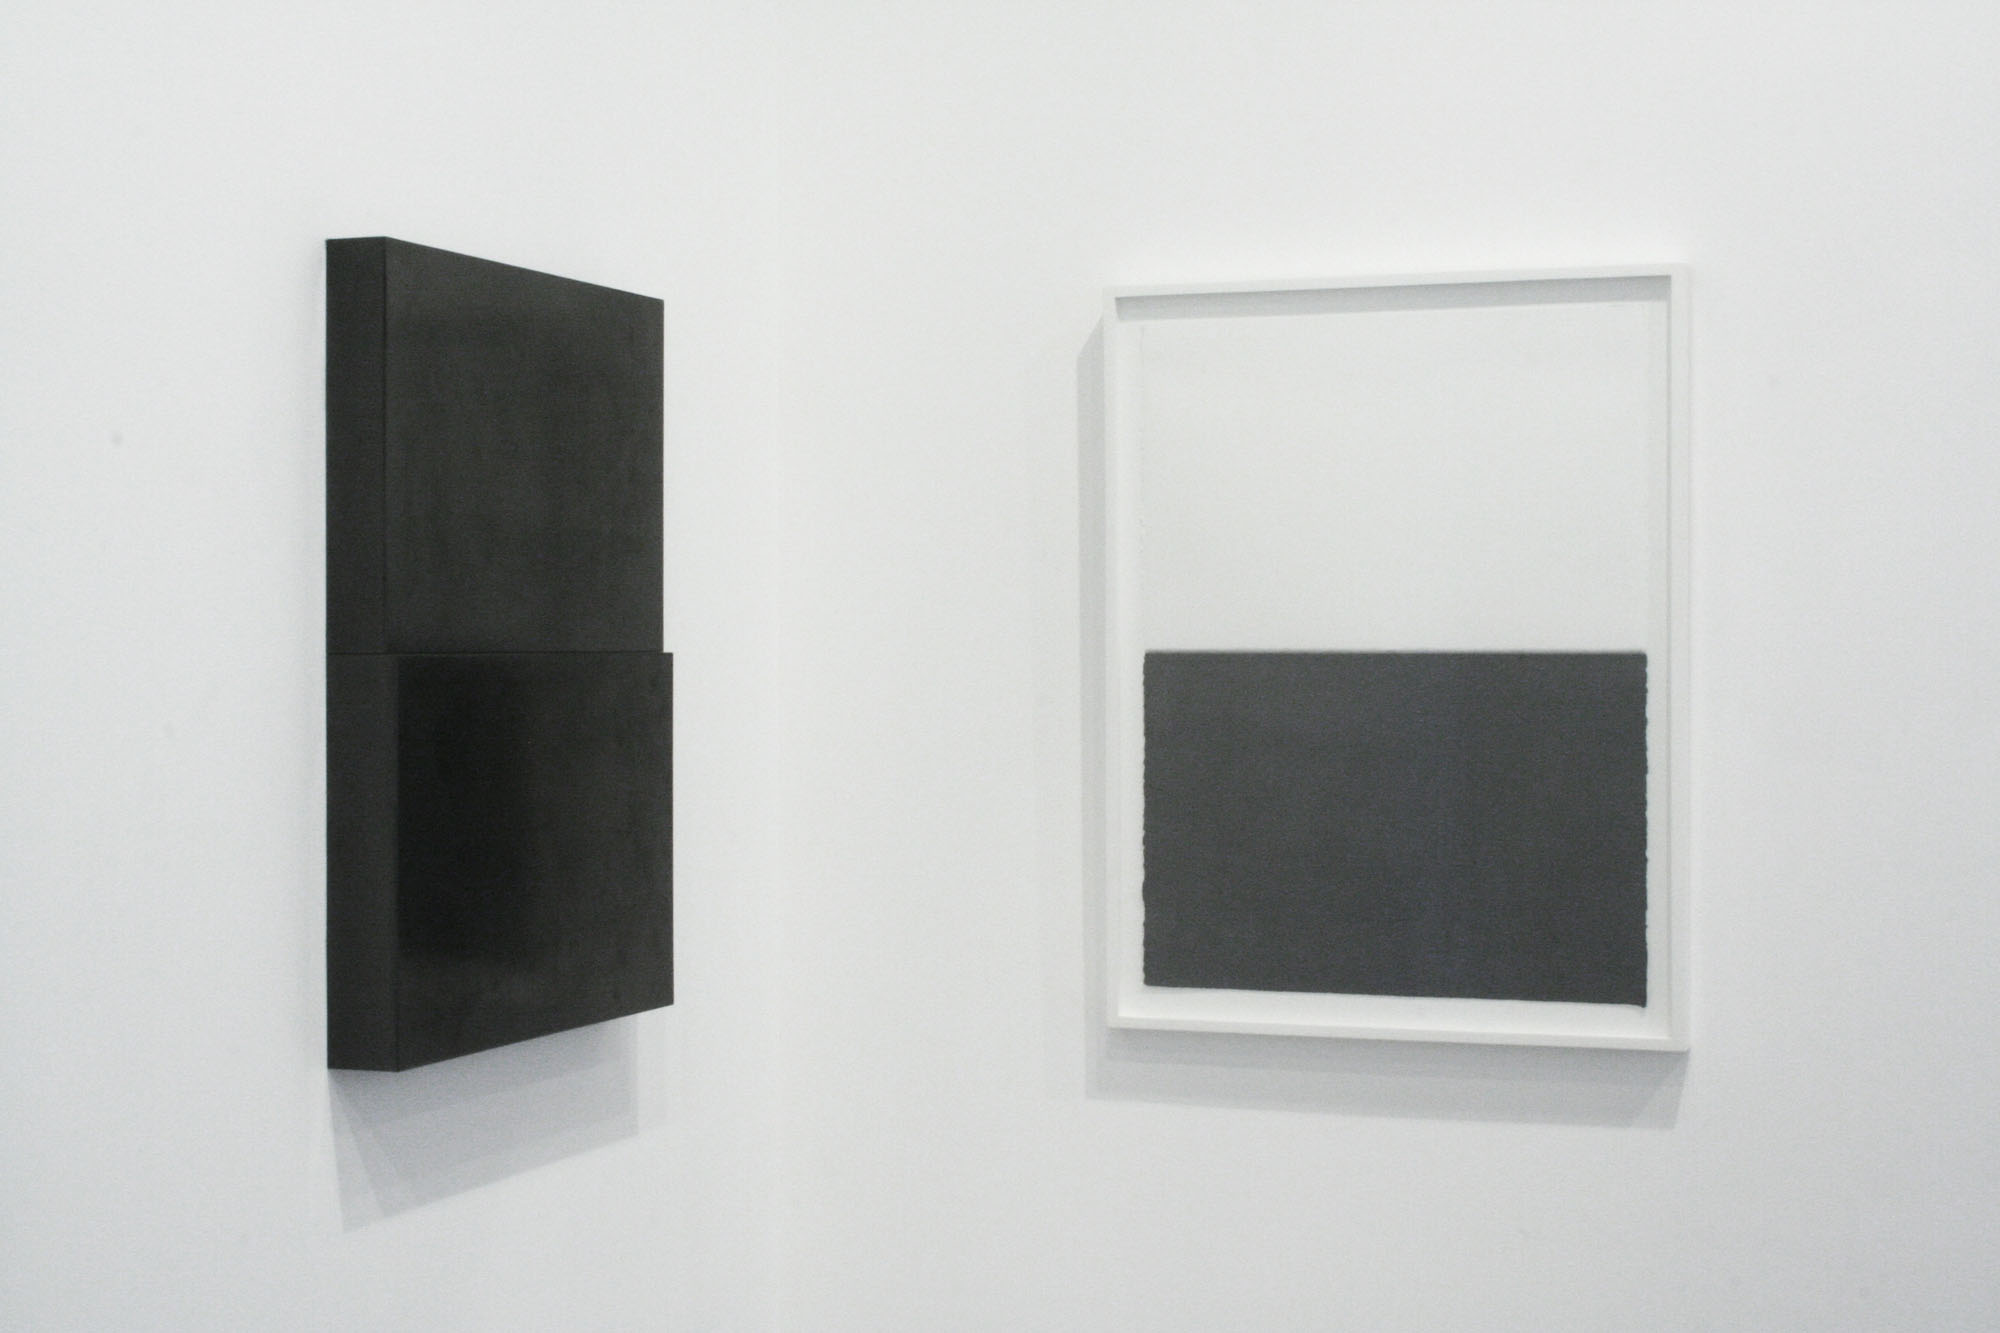 """Diptych, no.1, 2010  Drawing: Graphite pencil on paper,30"""" x 22""""  Sculpture: Solid Graphite,30"""" x 22""""x 3"""""""